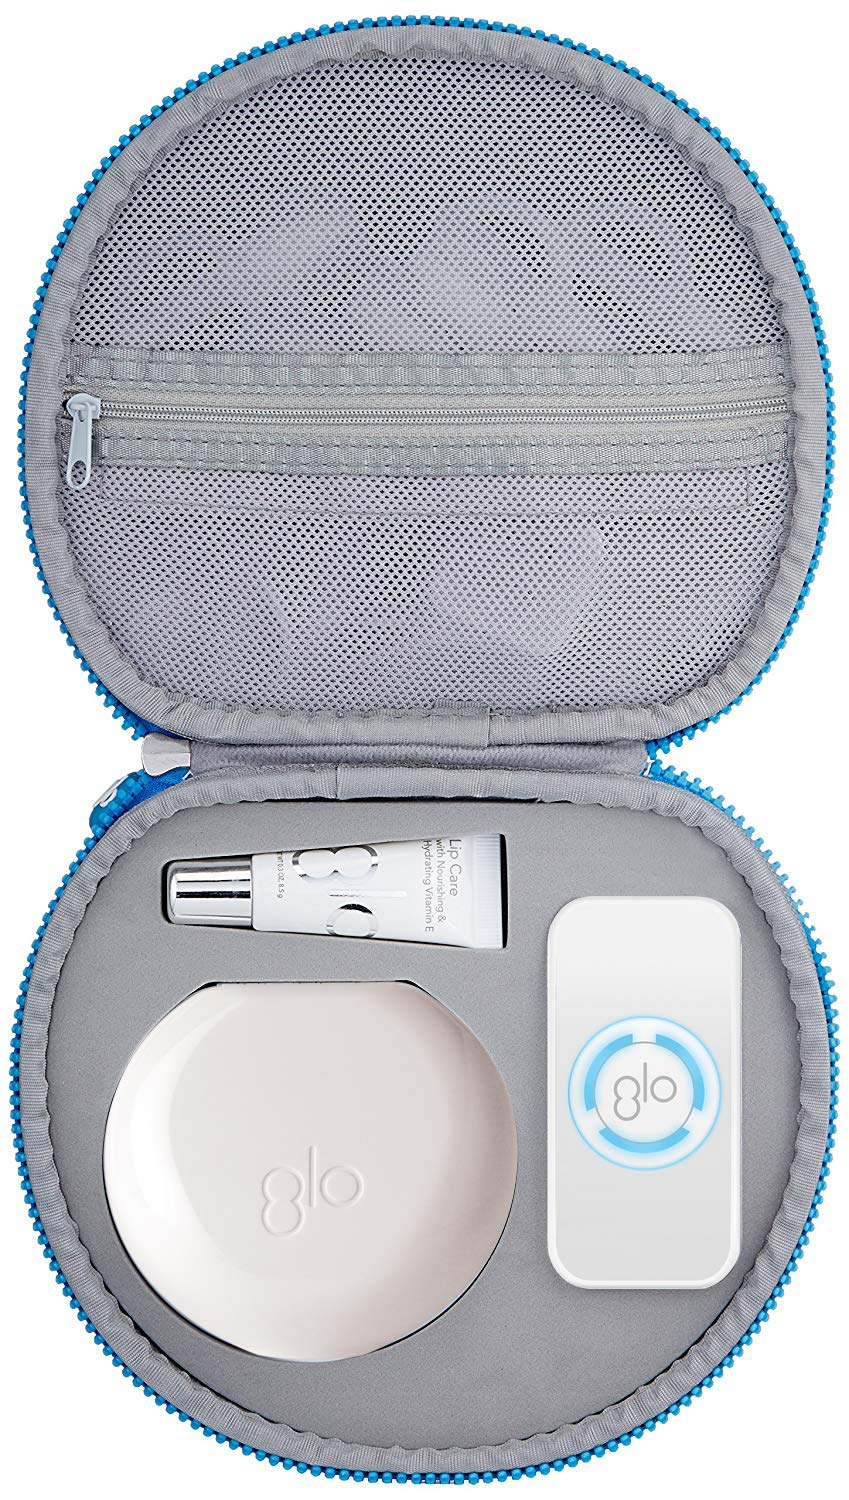 GLO Brilliant Deluxe Teeth Whitening Device Kit with Patented Blue LED Light & Heat Accelerator for Fast, Pain-Free, Long Lasting Results. Clinically Proven. Includes 10 GLO Gel Vials+ Lip Care, WHITE by GLO Science (Image #10)